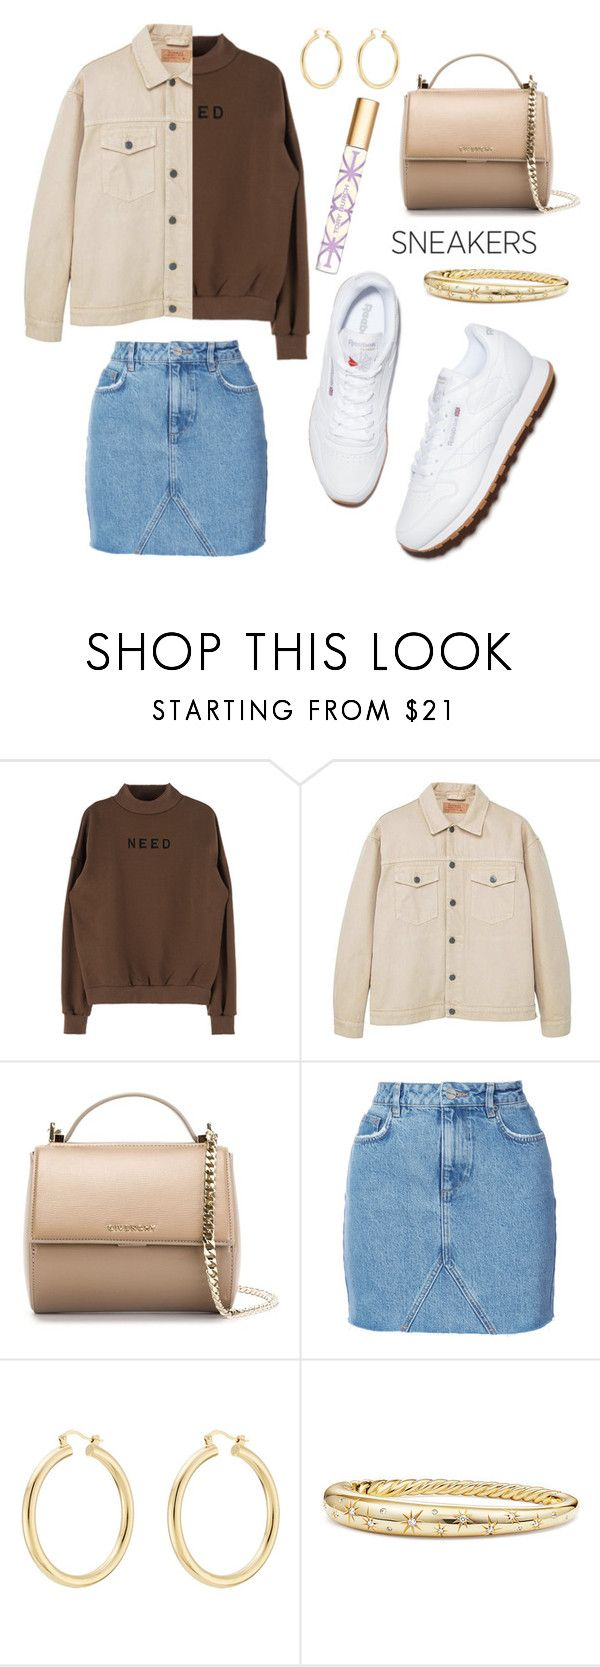 """""""white sneakers"""" by kyalouise on Polyvore featuring MANGO, Givenchy, Anine Bing, Isabel Marant, David Yurman, Tory Burch and whitesneakers"""